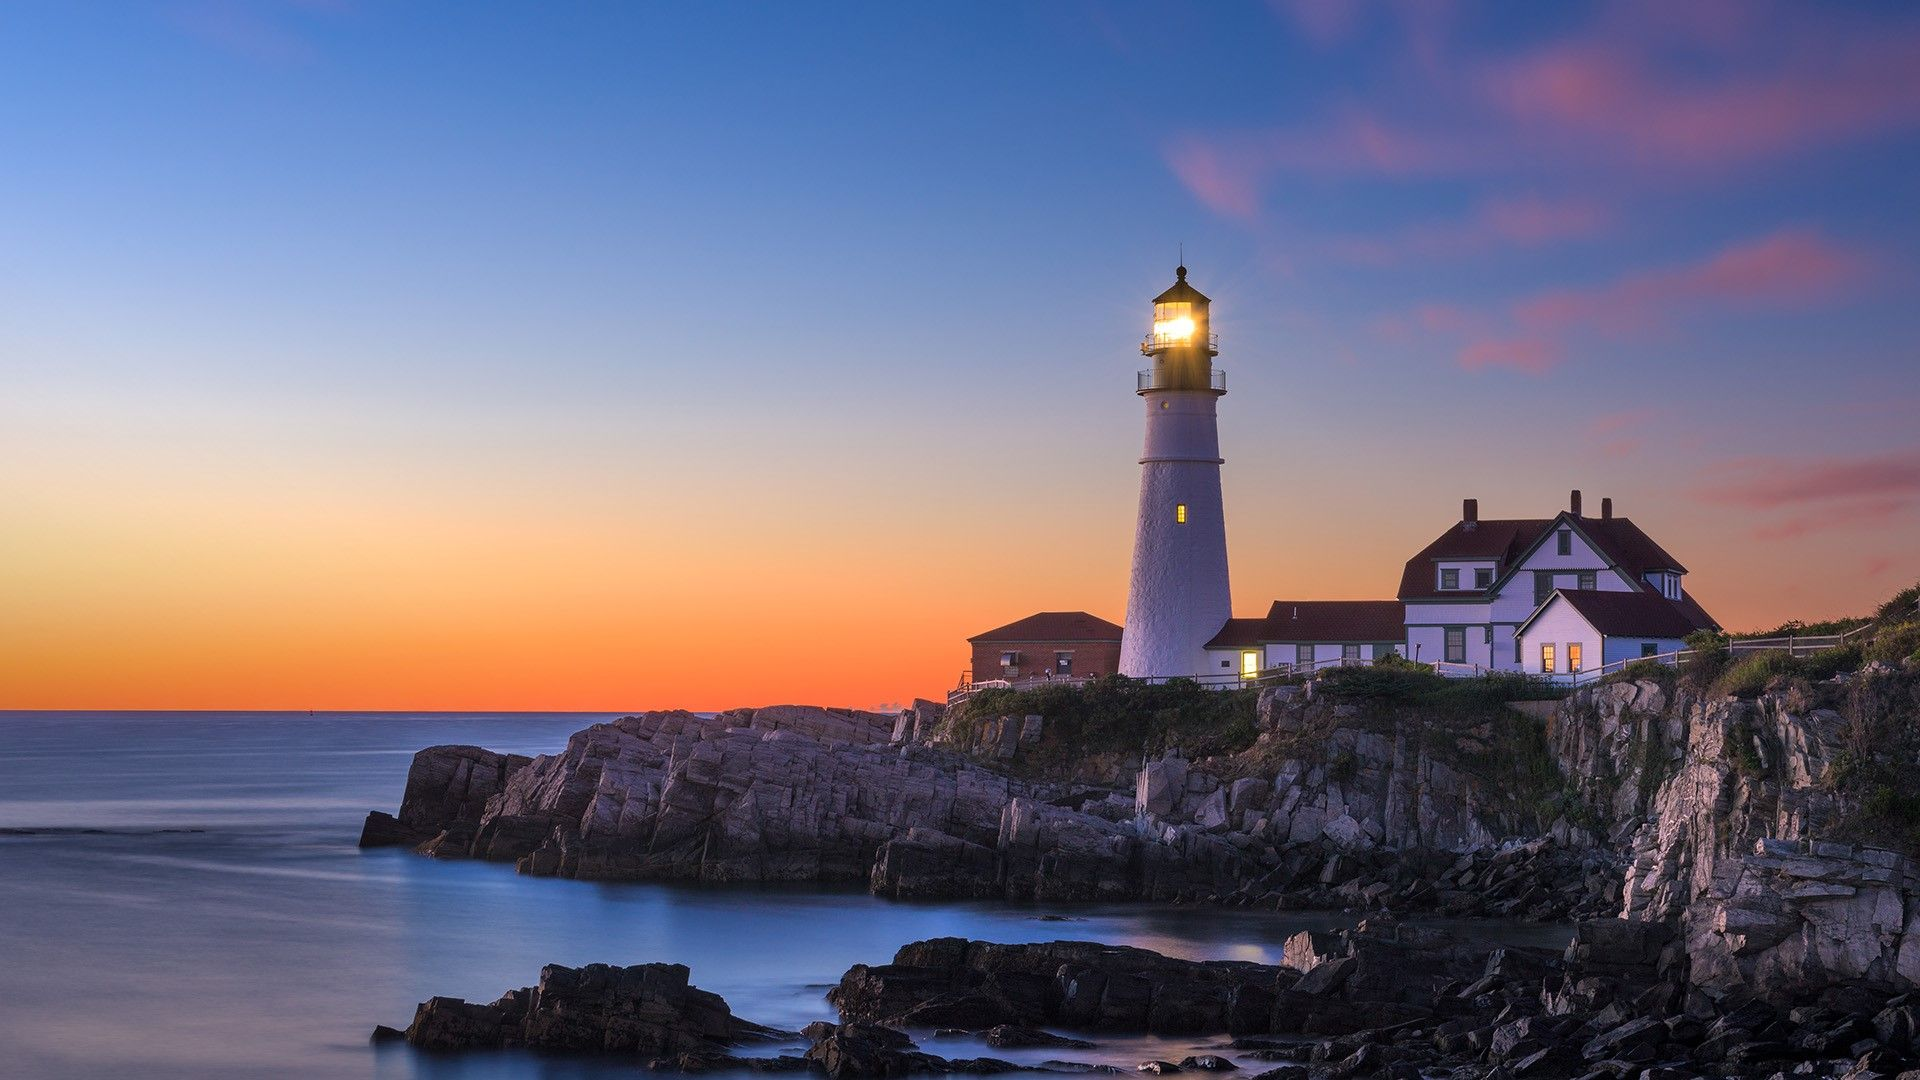 Portland Head Lighthouse, Cape Elizabeth, Maine. [Desktop wallpaper 1920x1080]